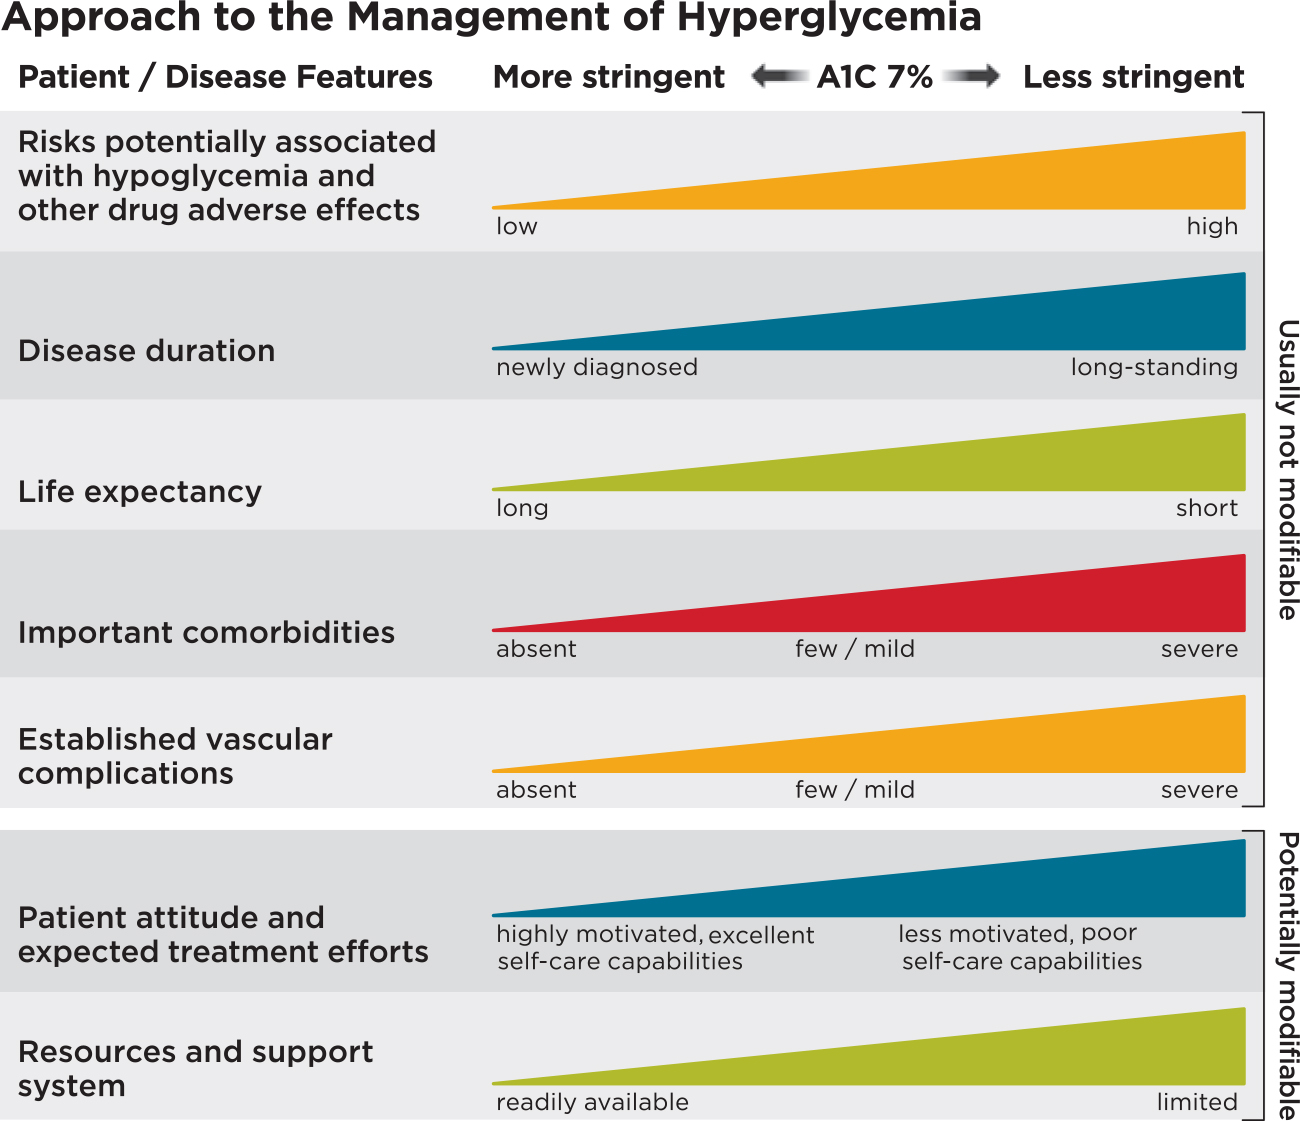 Approach to the Management of Hyperglycemia